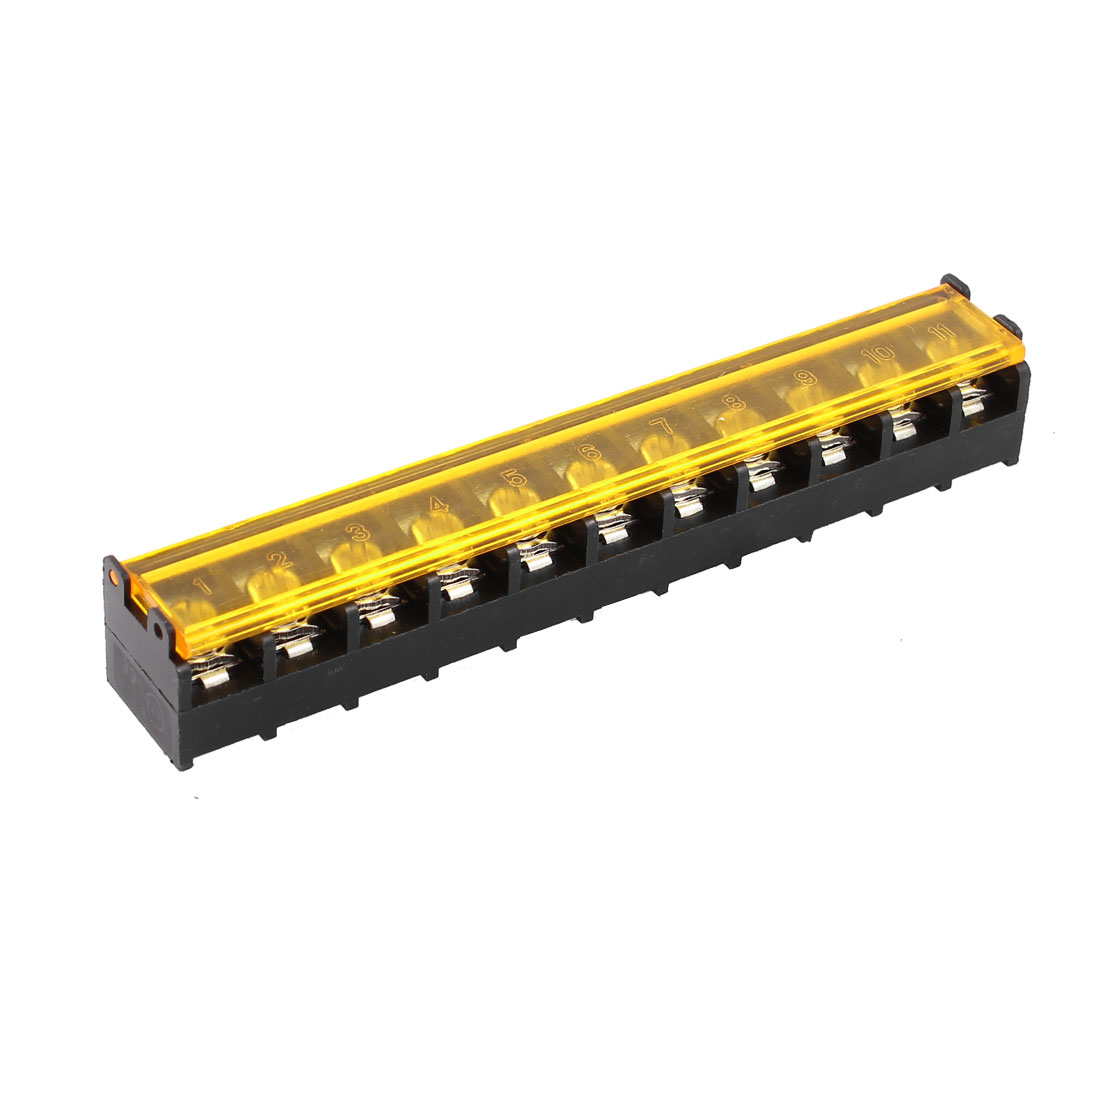 300V 30A 11 Positions 9.5mm Spacing Barrier Terminal Wiring Covered Board Block